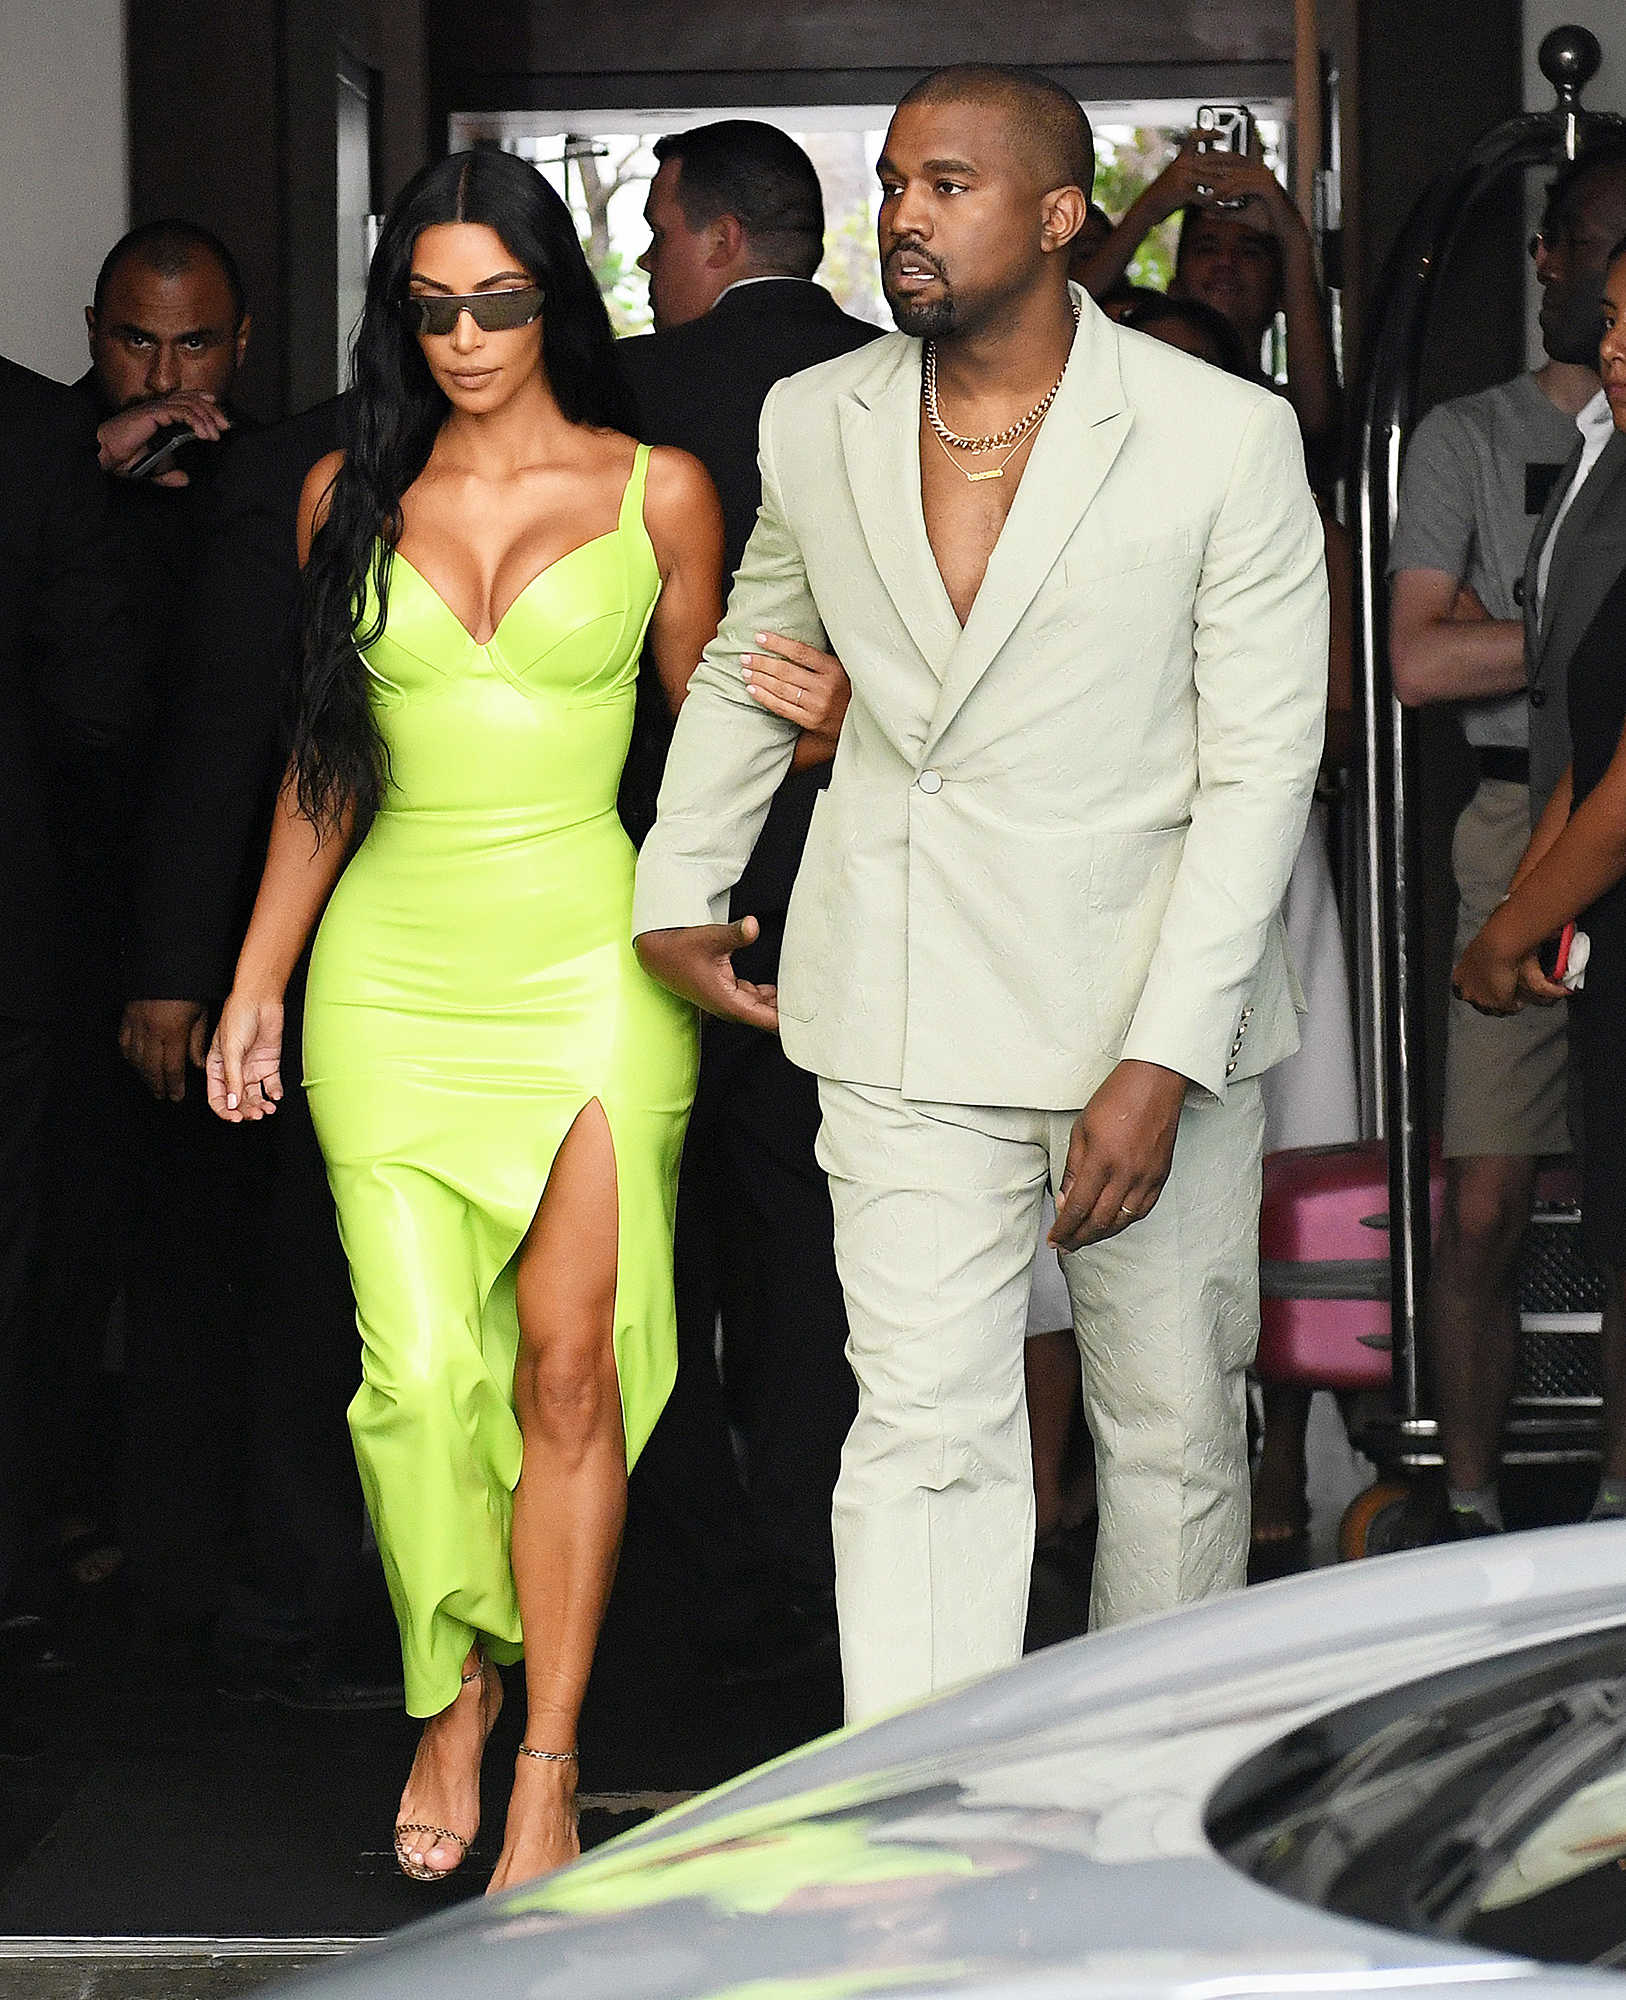 Kim Kardashian Kanye West 2 Chainz Wedding Ice Cream Date - The reality star held her husband's arm while leaving the ceremony.